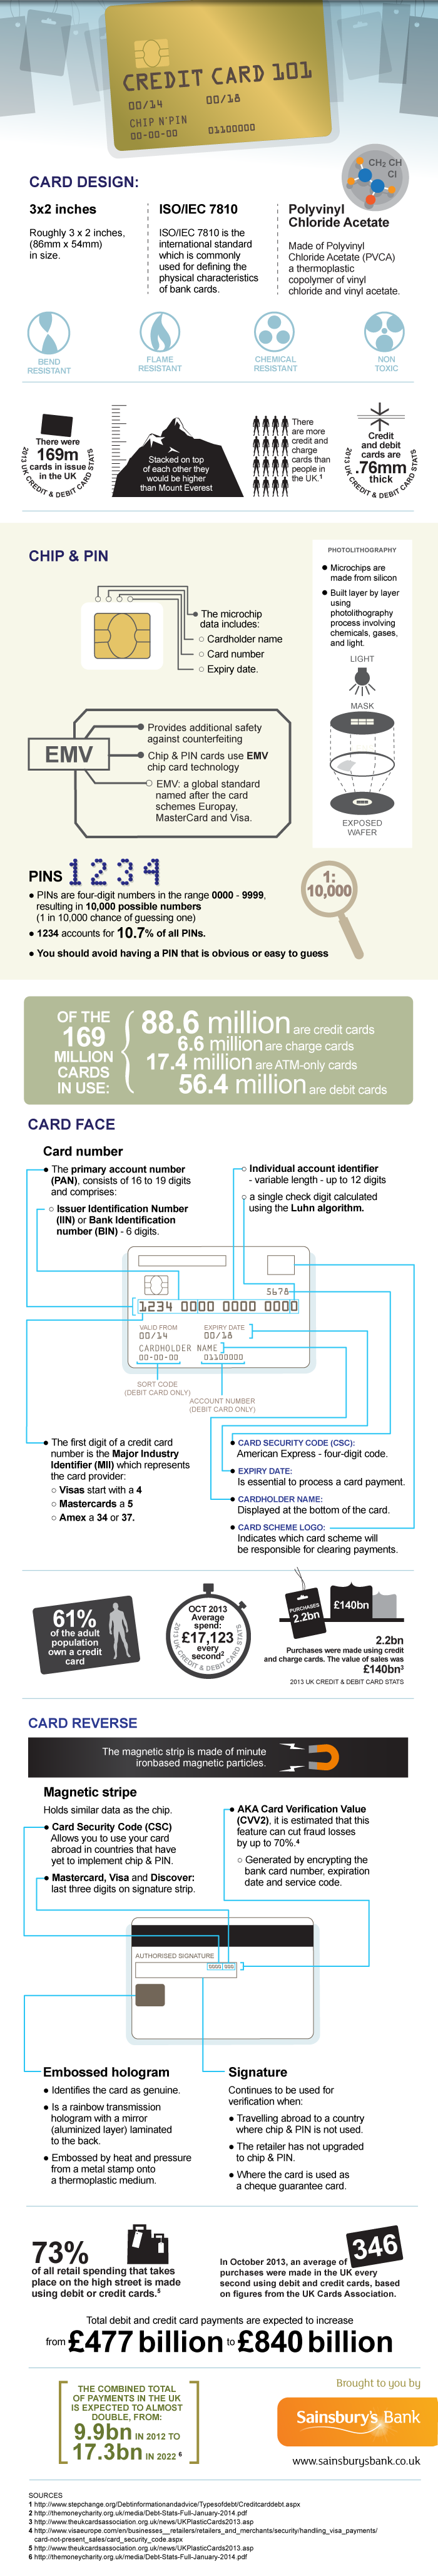 fascinating facts about the credit card - infographic